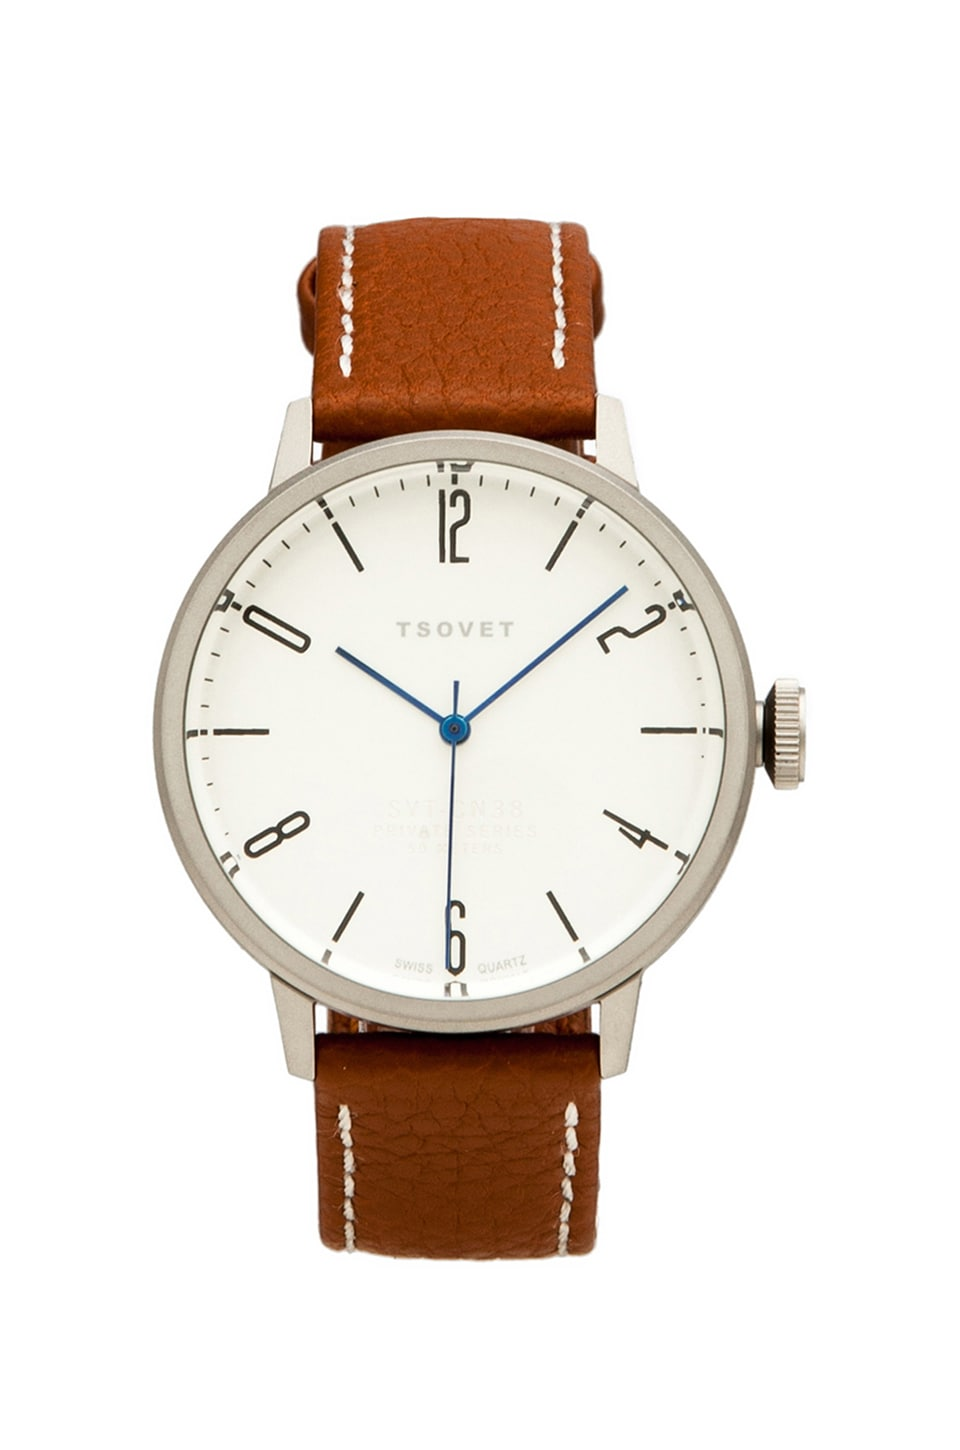 Tsovet SVT-CN38 38MM in Brown & White